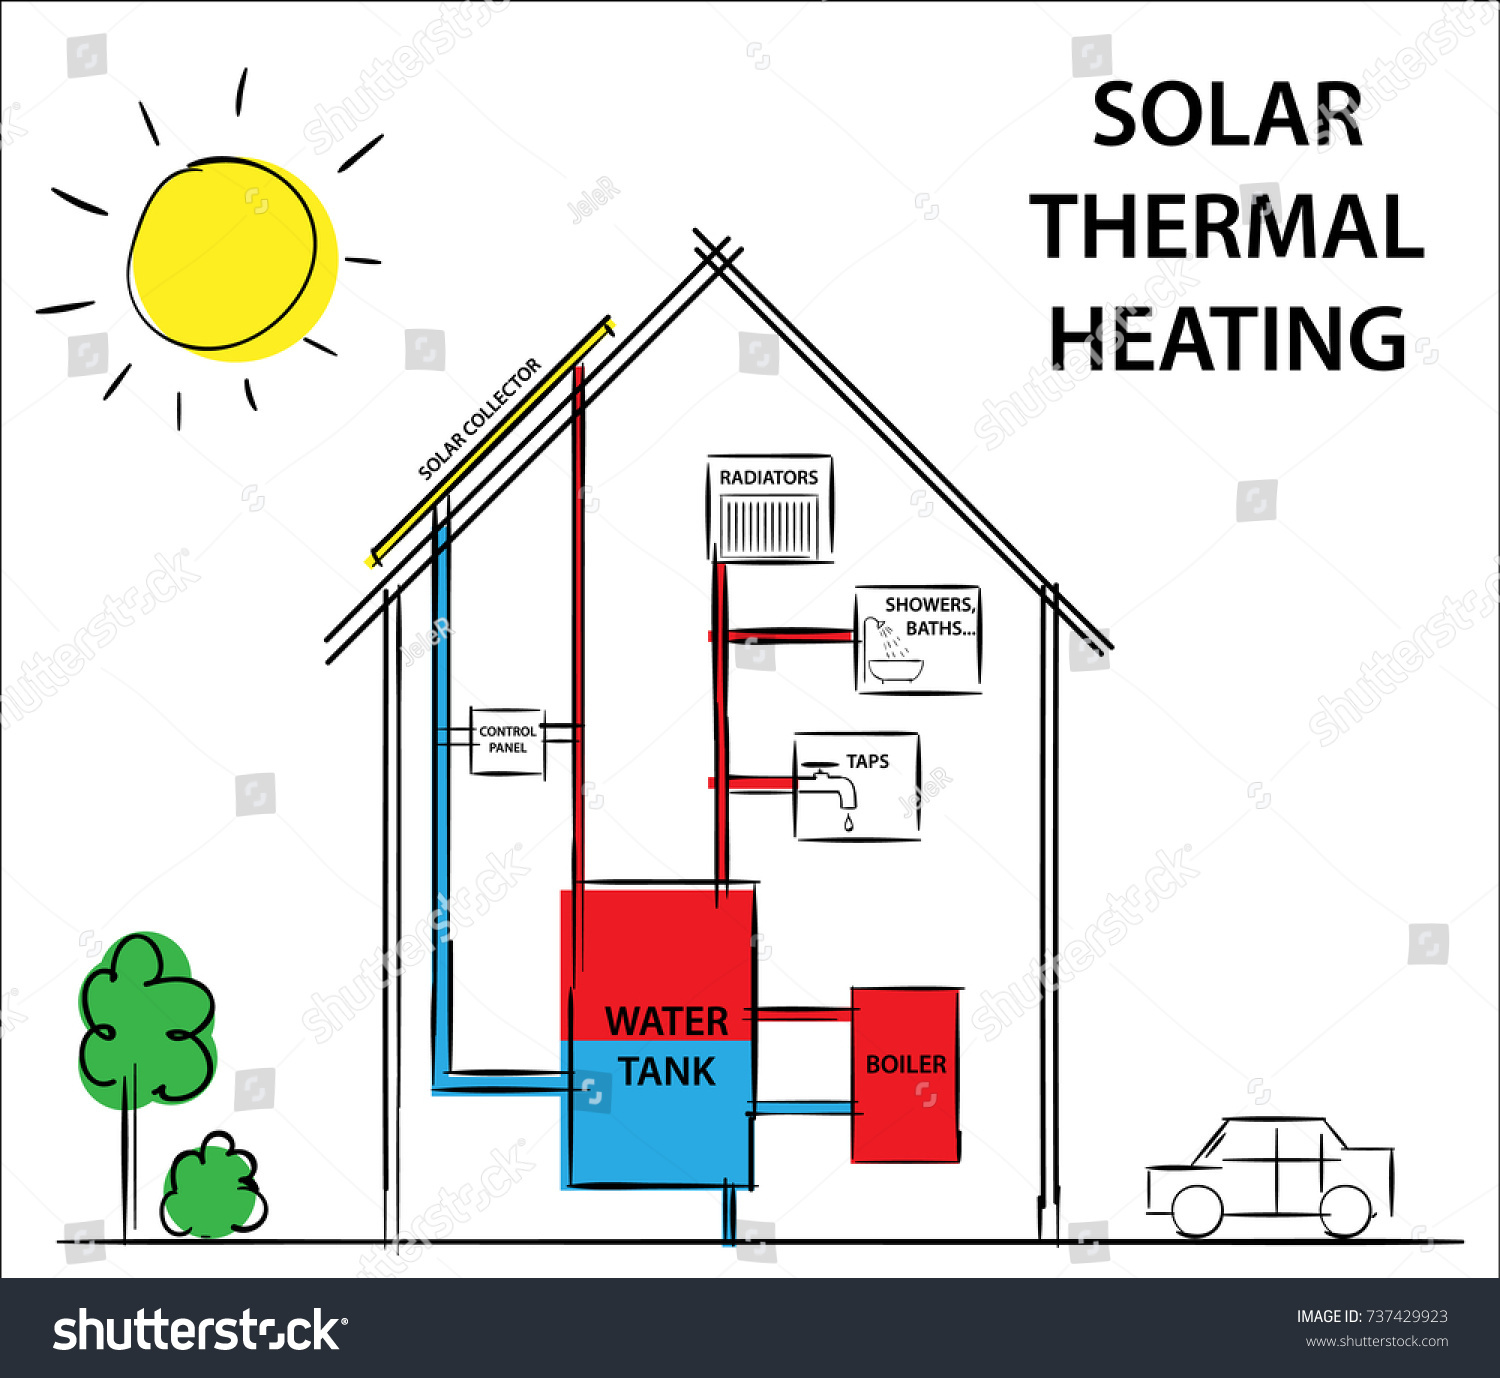 Solar Thermal Heating Cooling Systems Diagram Stock Vector